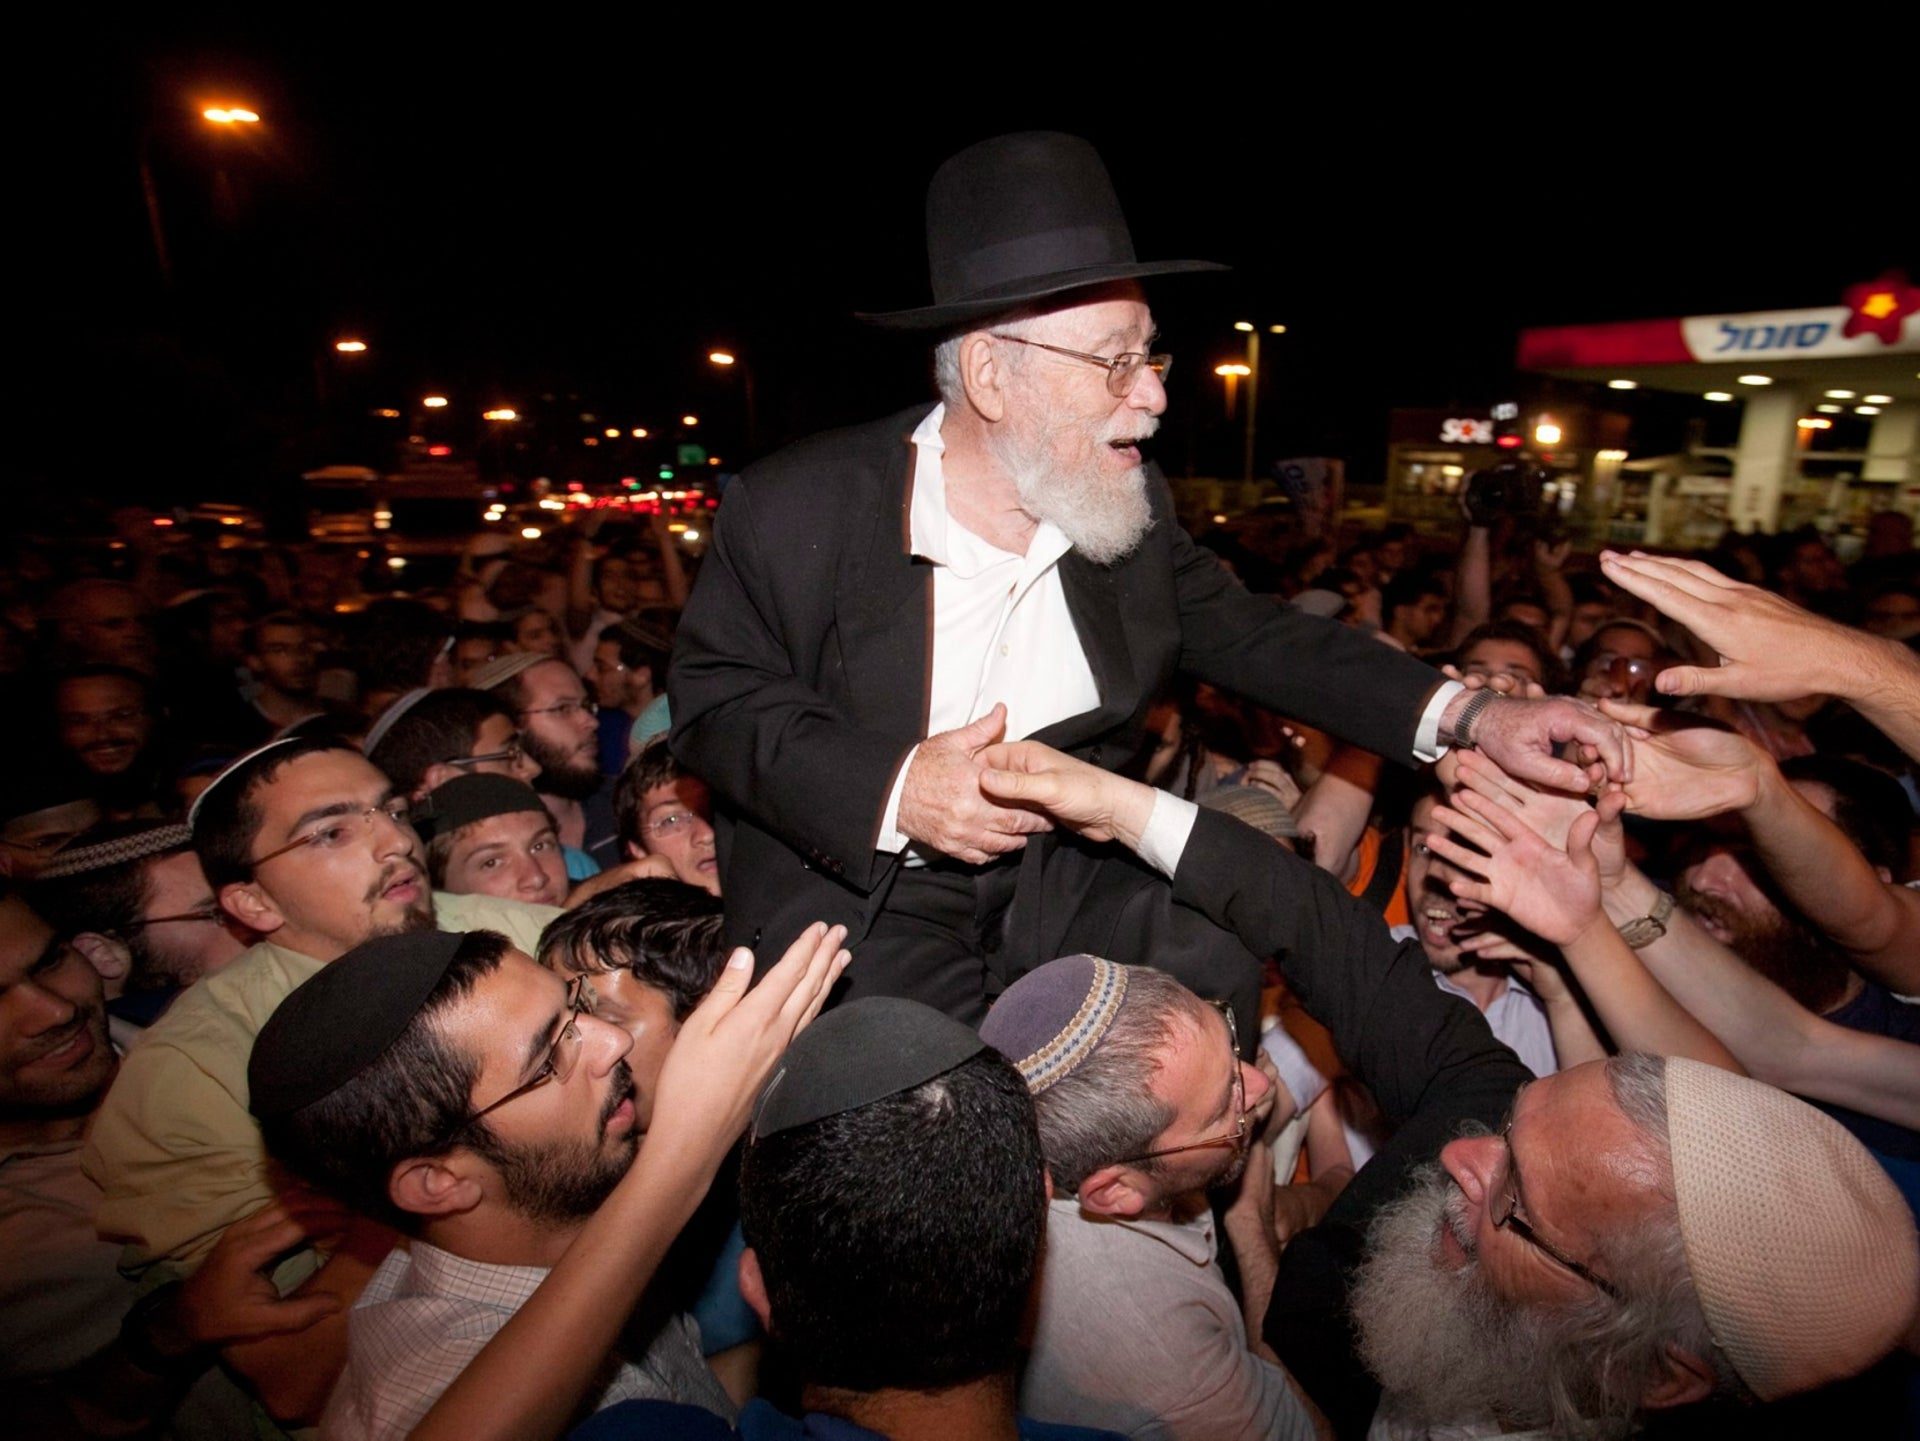 Rabbi Dov Lior is carried on the shoulders of his supporters who rallied in Jerusalem after his arrest, June 27, 2011.